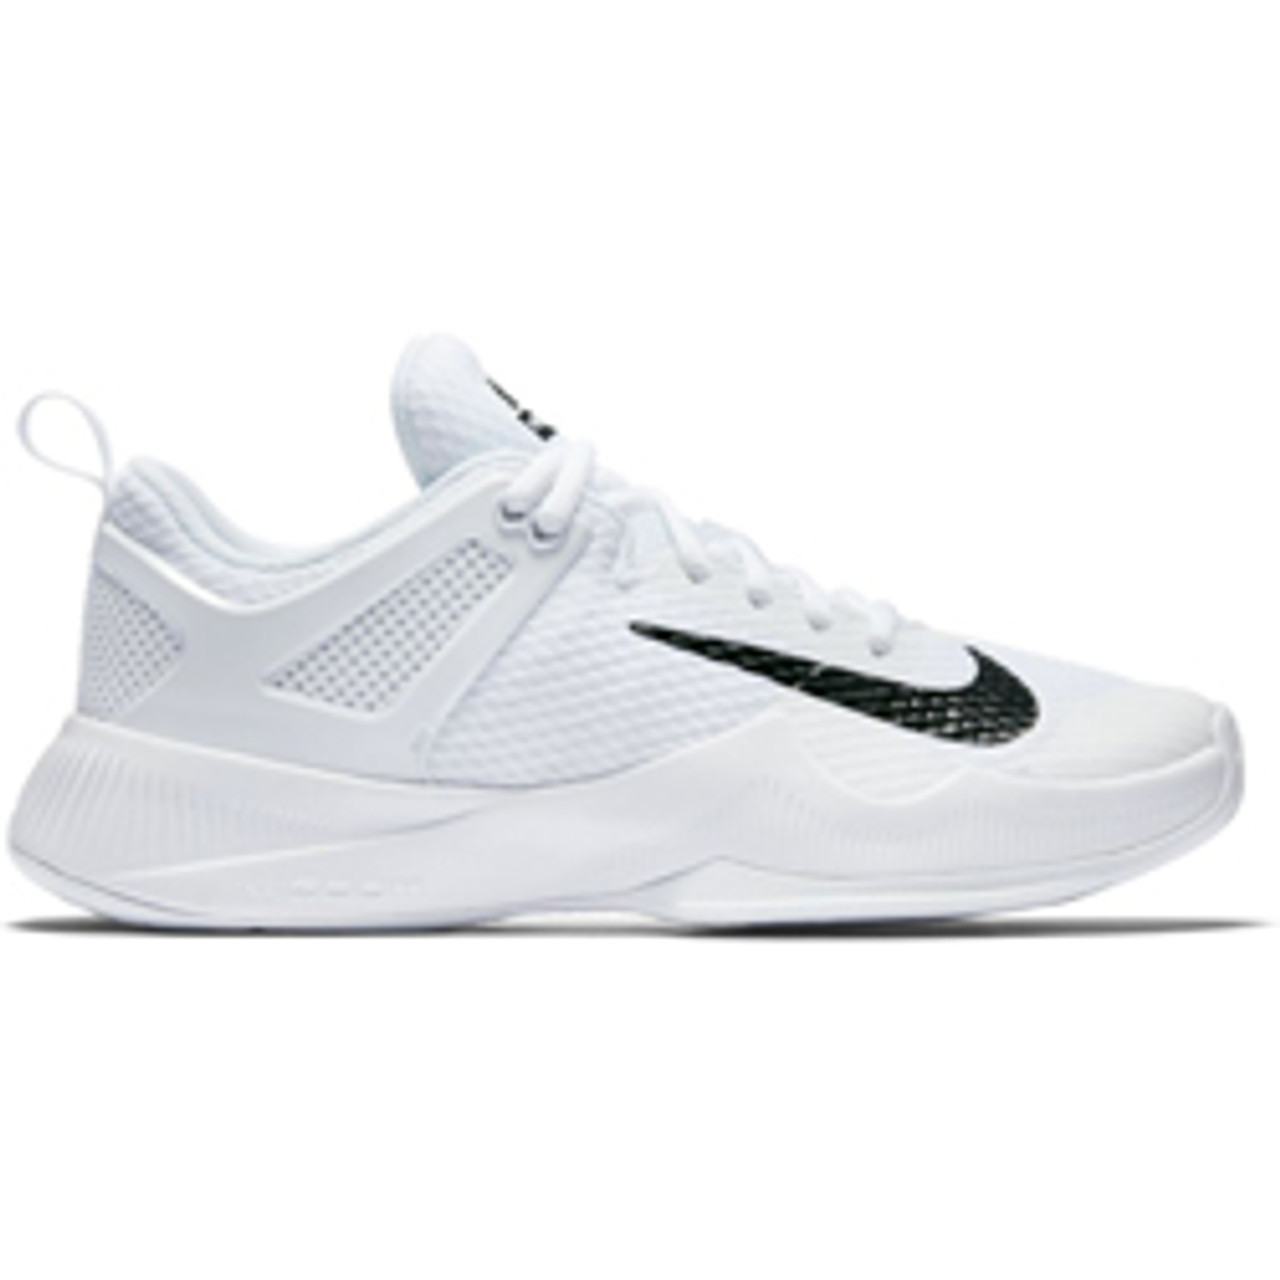 Nike Air Zoom HyperAce Women's Volleyball Shoe Size 10.5